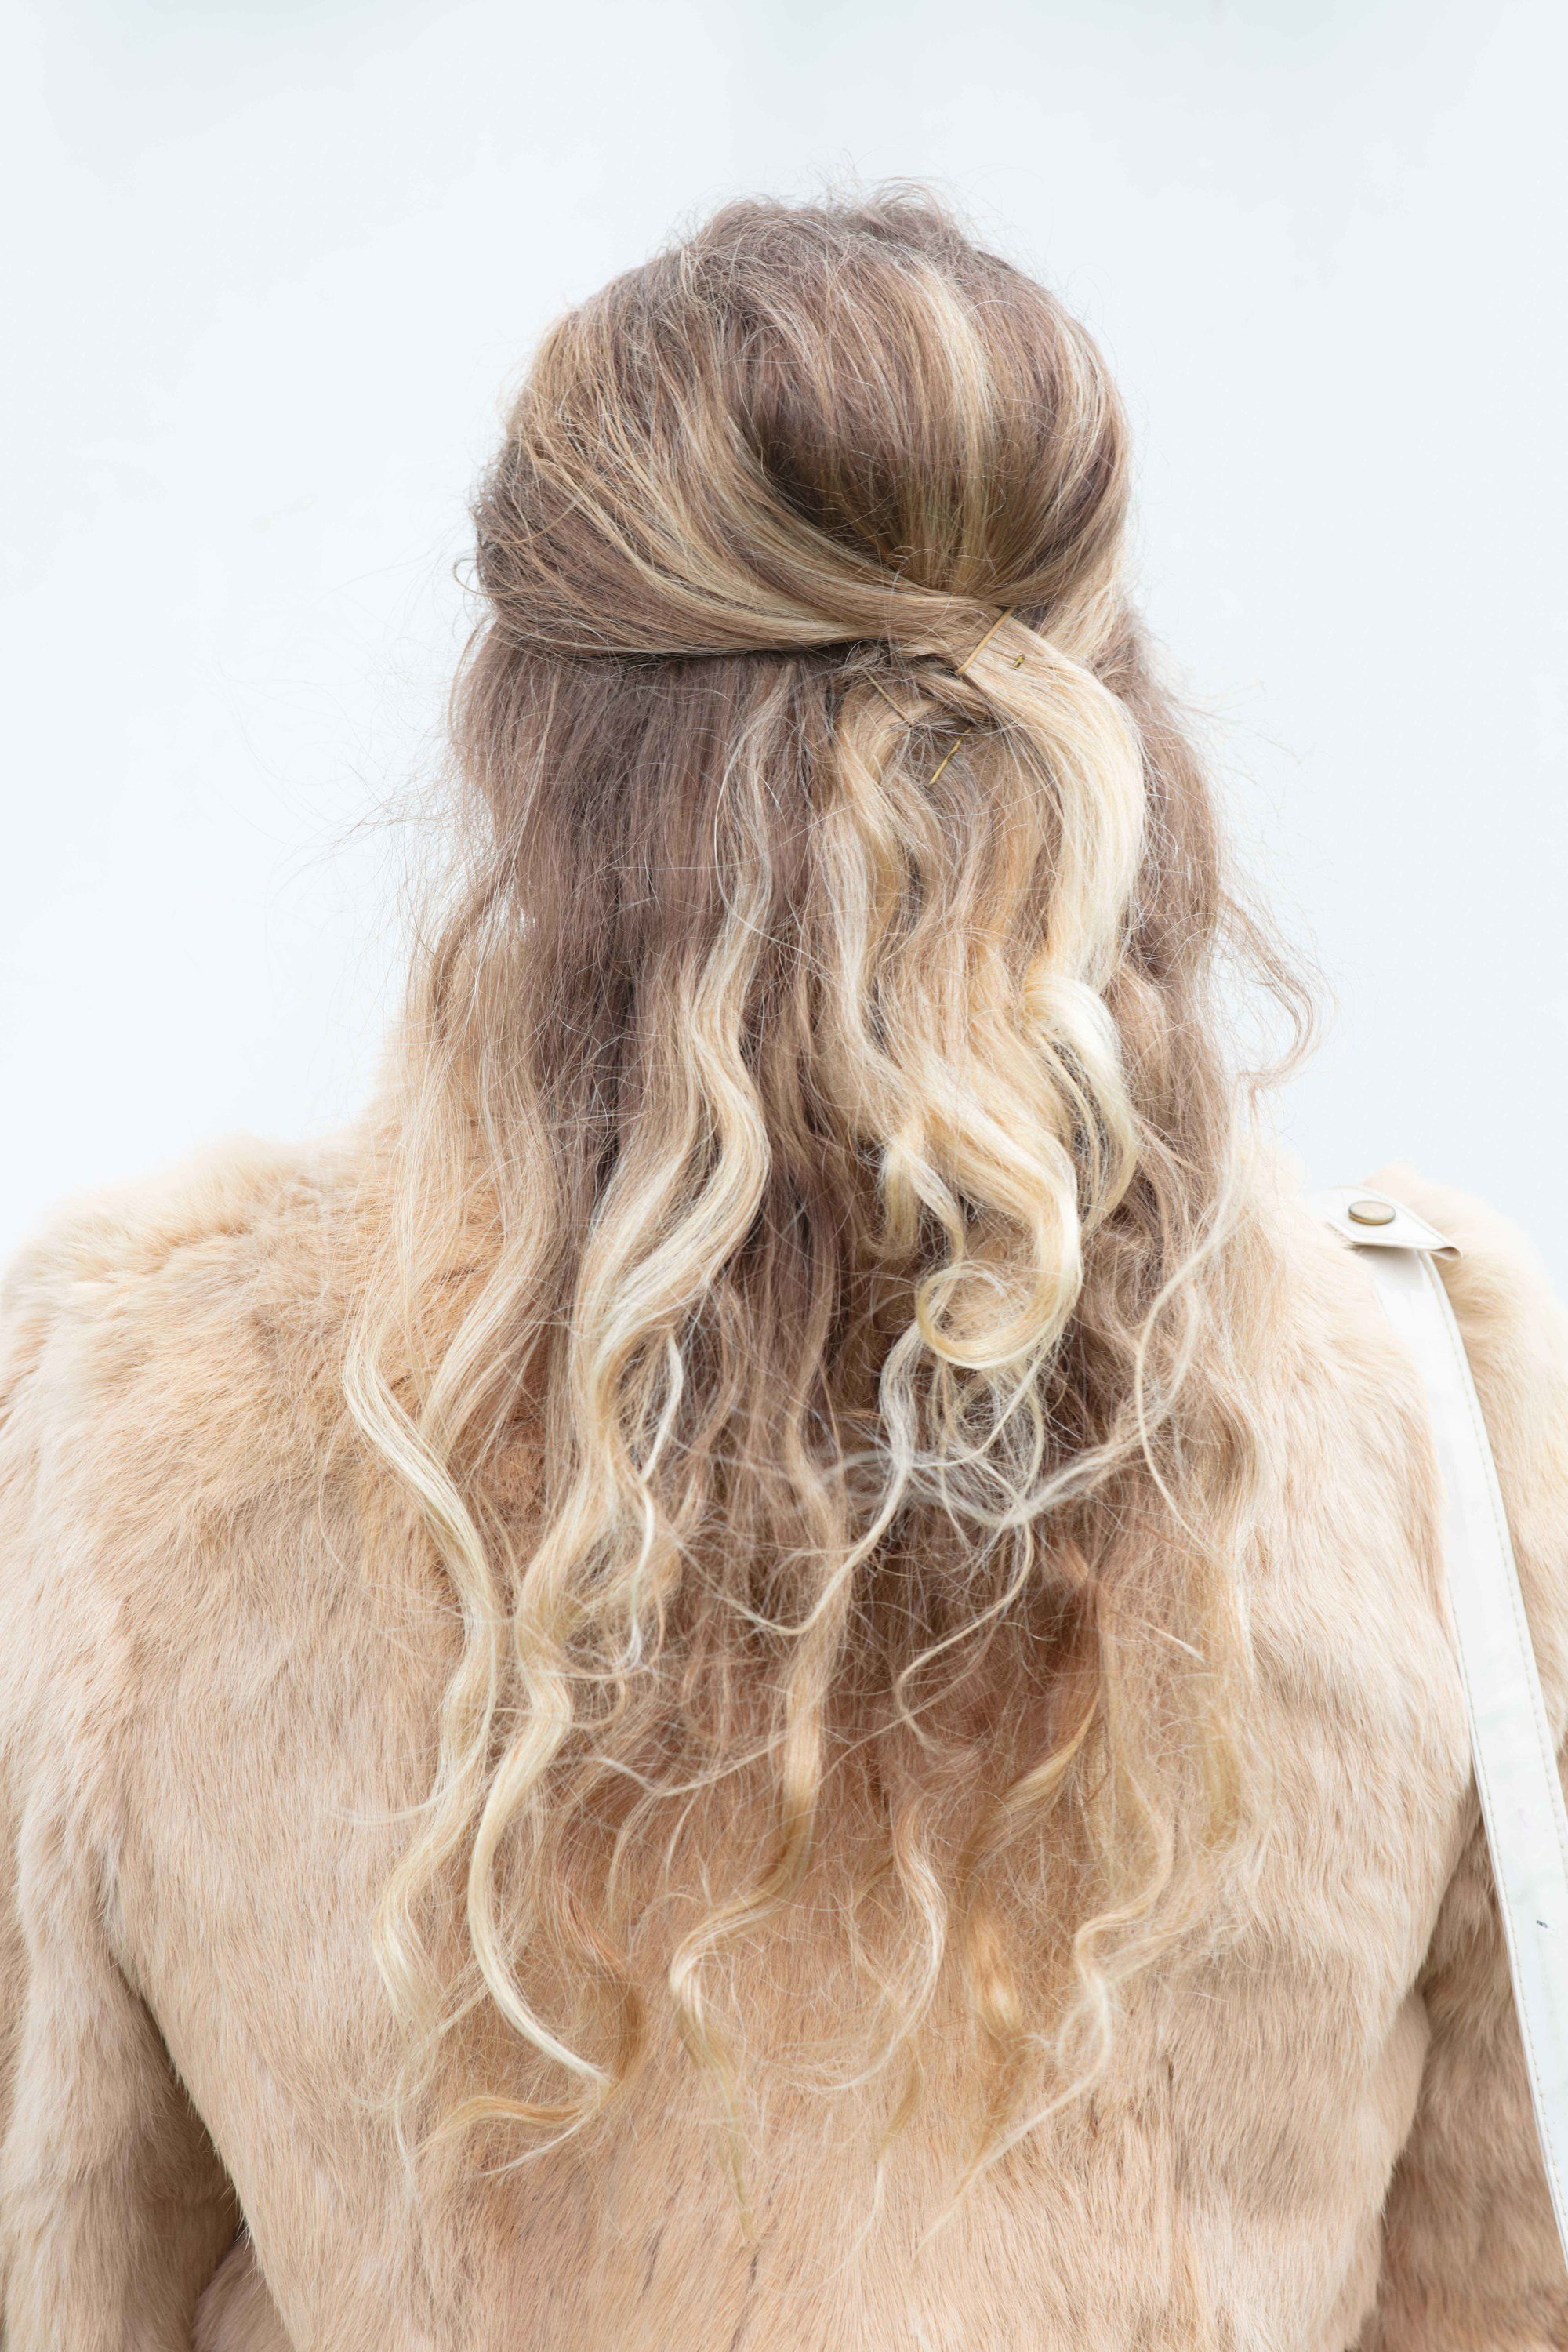 Retro hairstyles: Close up back shot of a woman with long bronde hair styled into a half-up, half-down beehive, wearing a furry jacket and posing at the Goodwood festival